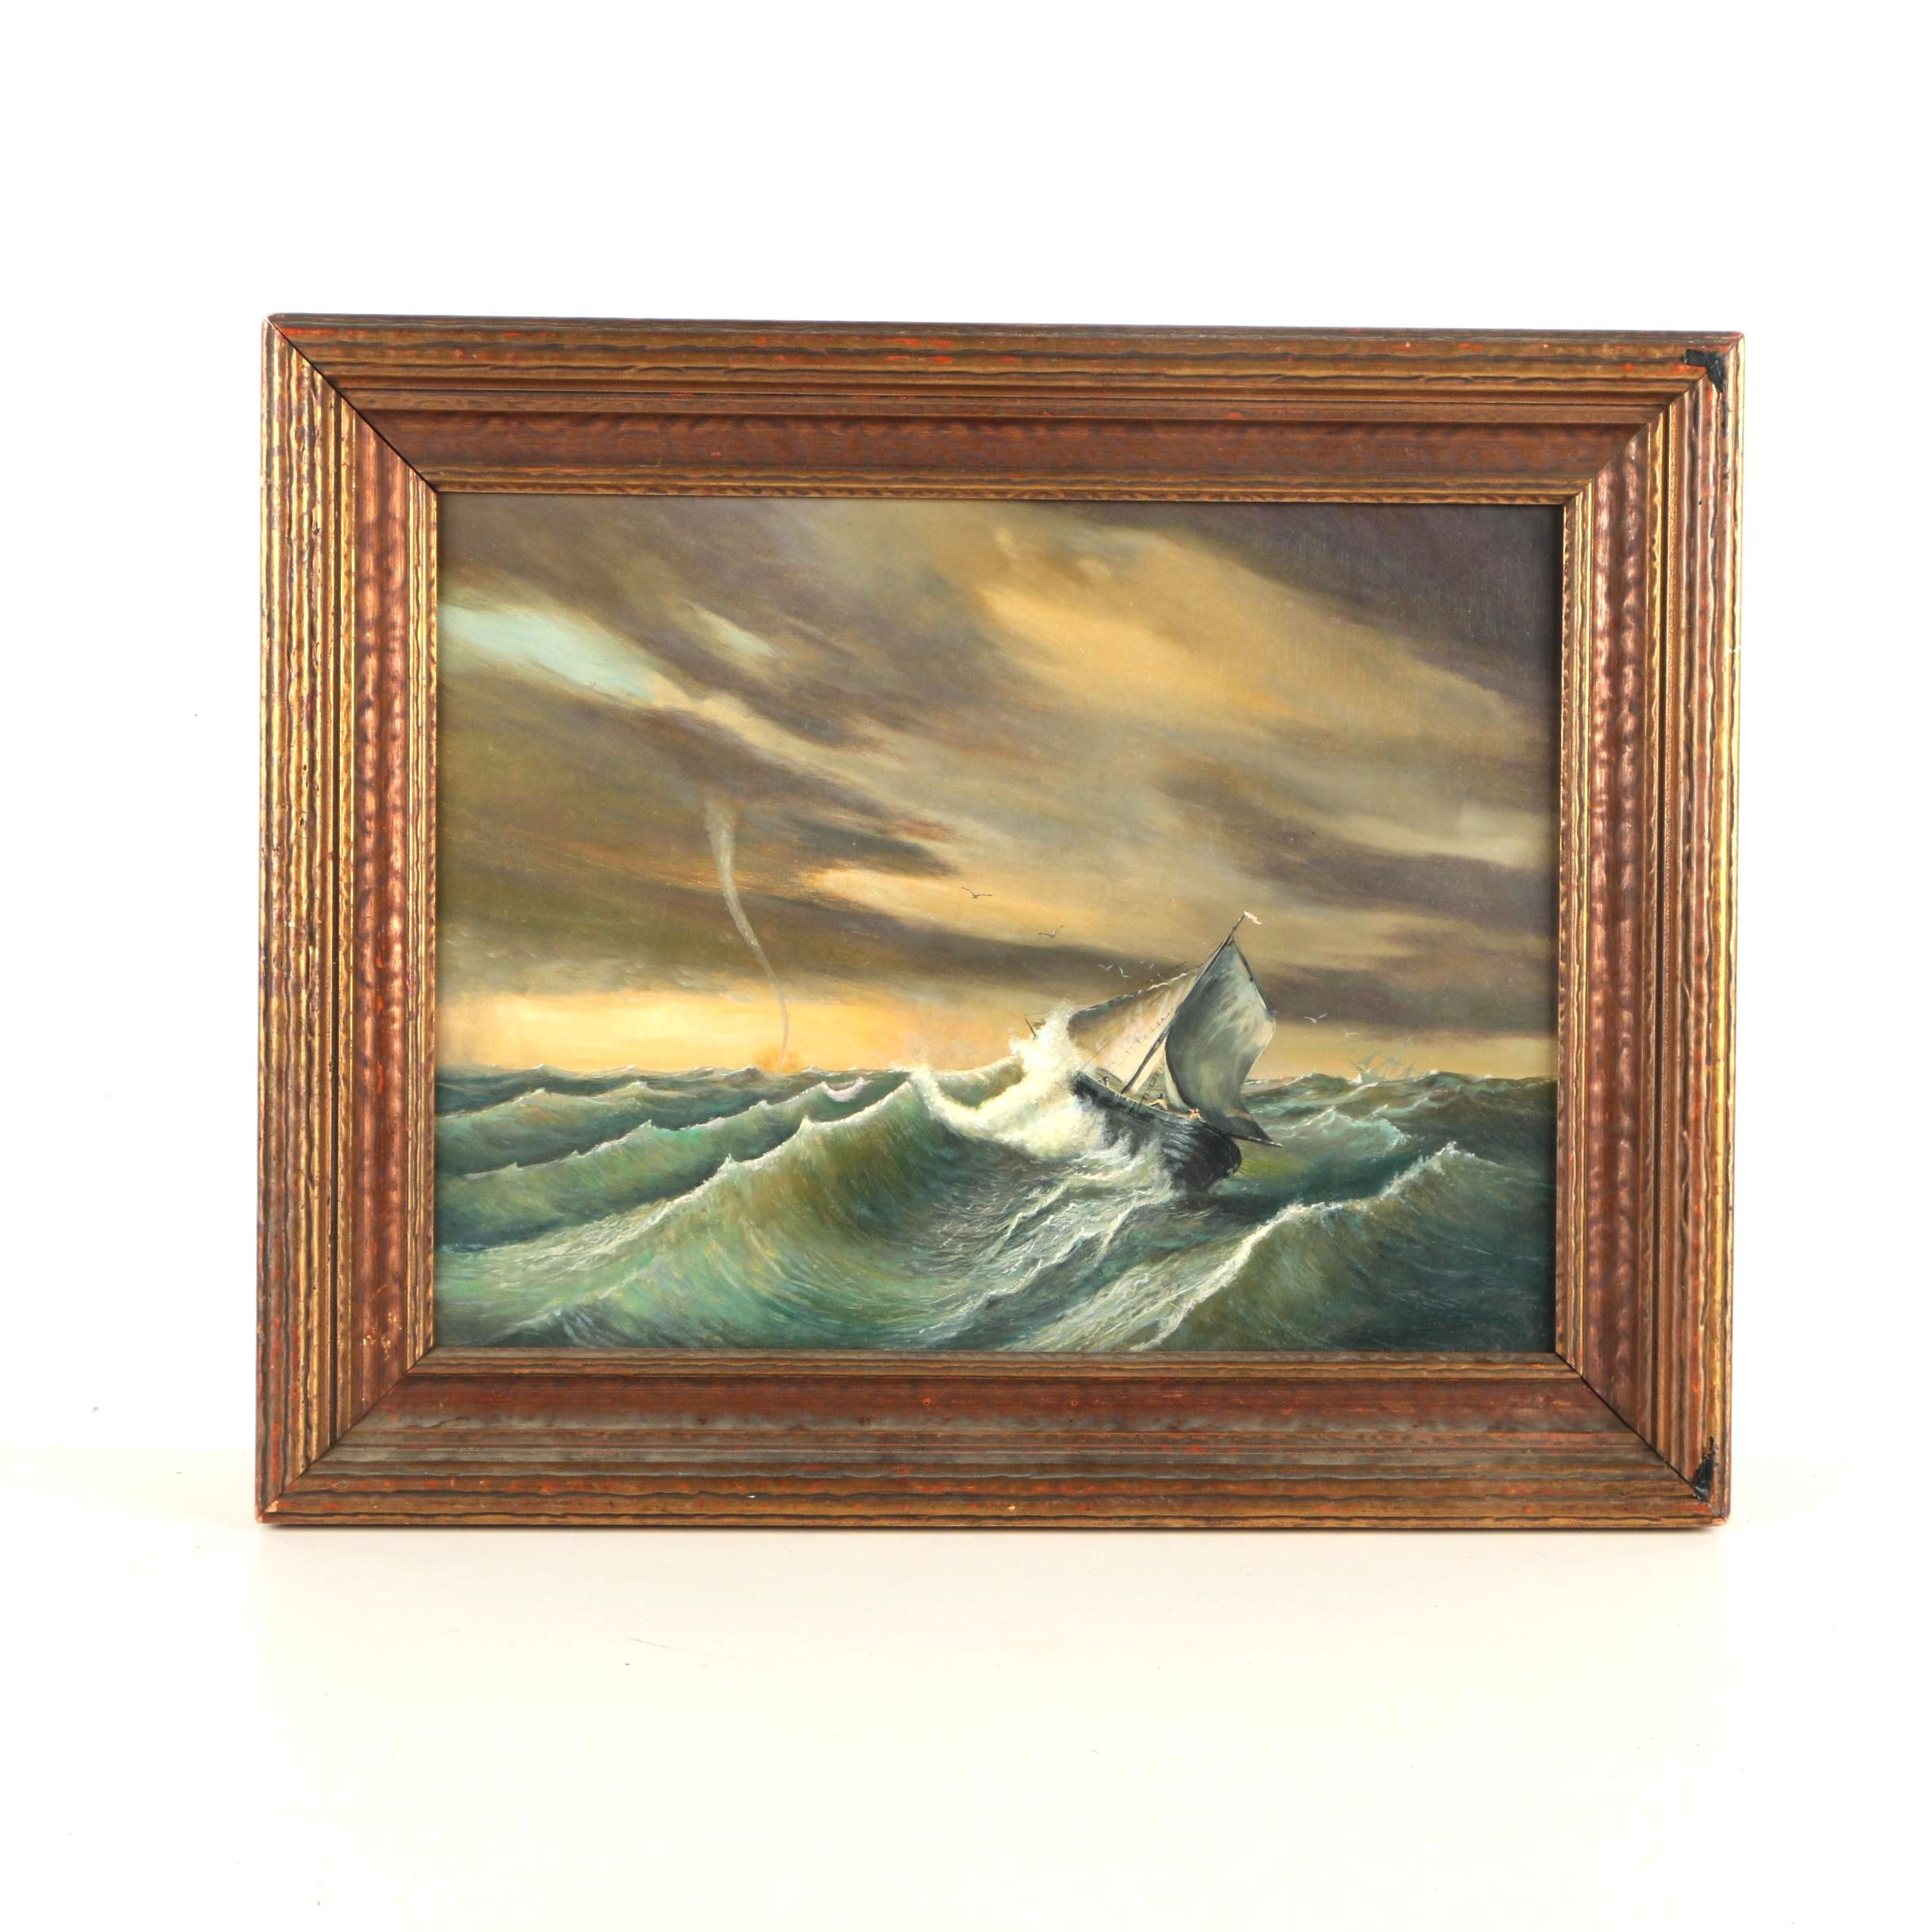 Oil Painting of Ships in a Storm in the Style of Mauritz de Haas